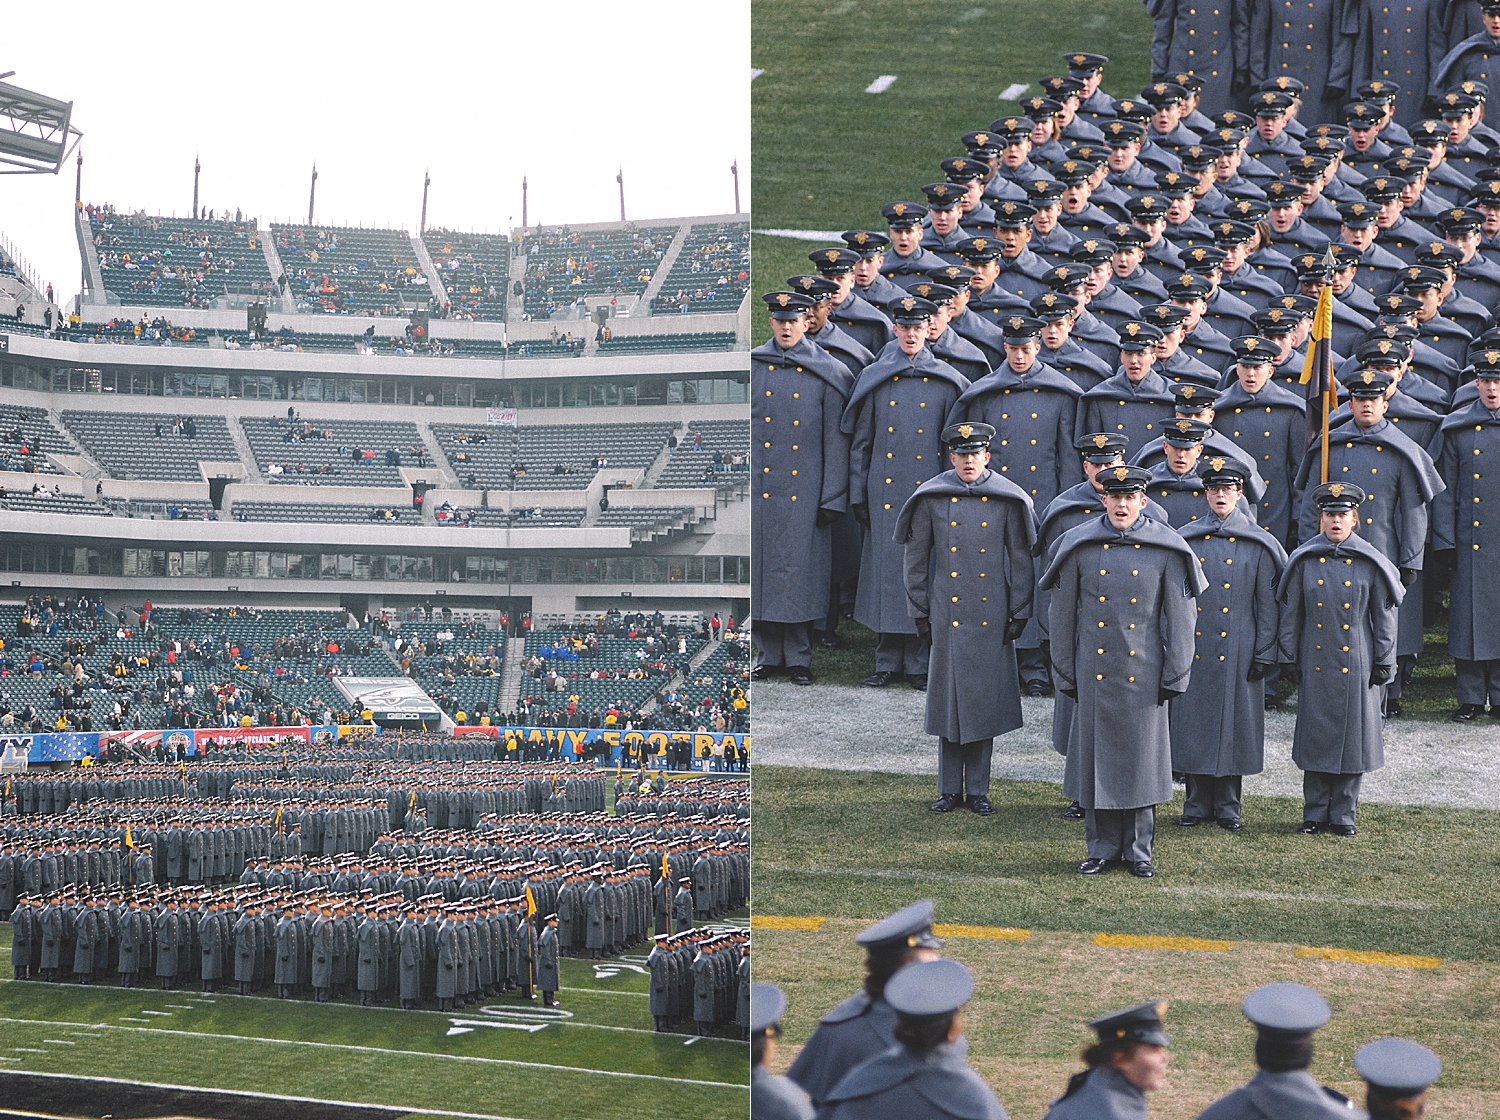 3-cadets-from-west-point-stand-in-formation-at-army-navy-game.jpg